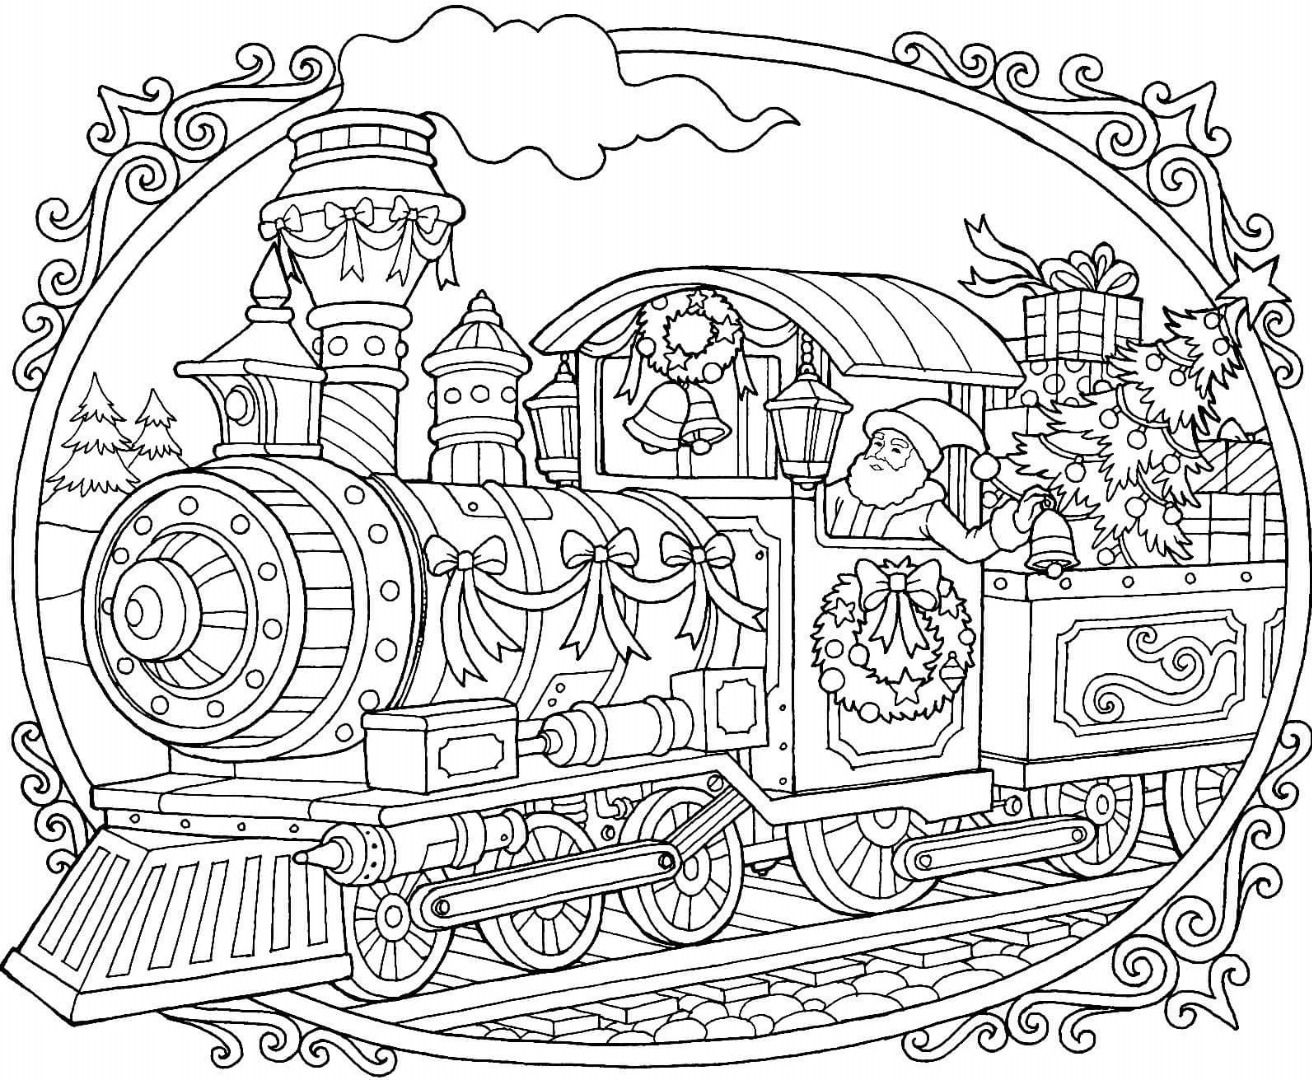 Christmas Train Coloring Page coloring pages Pinterest